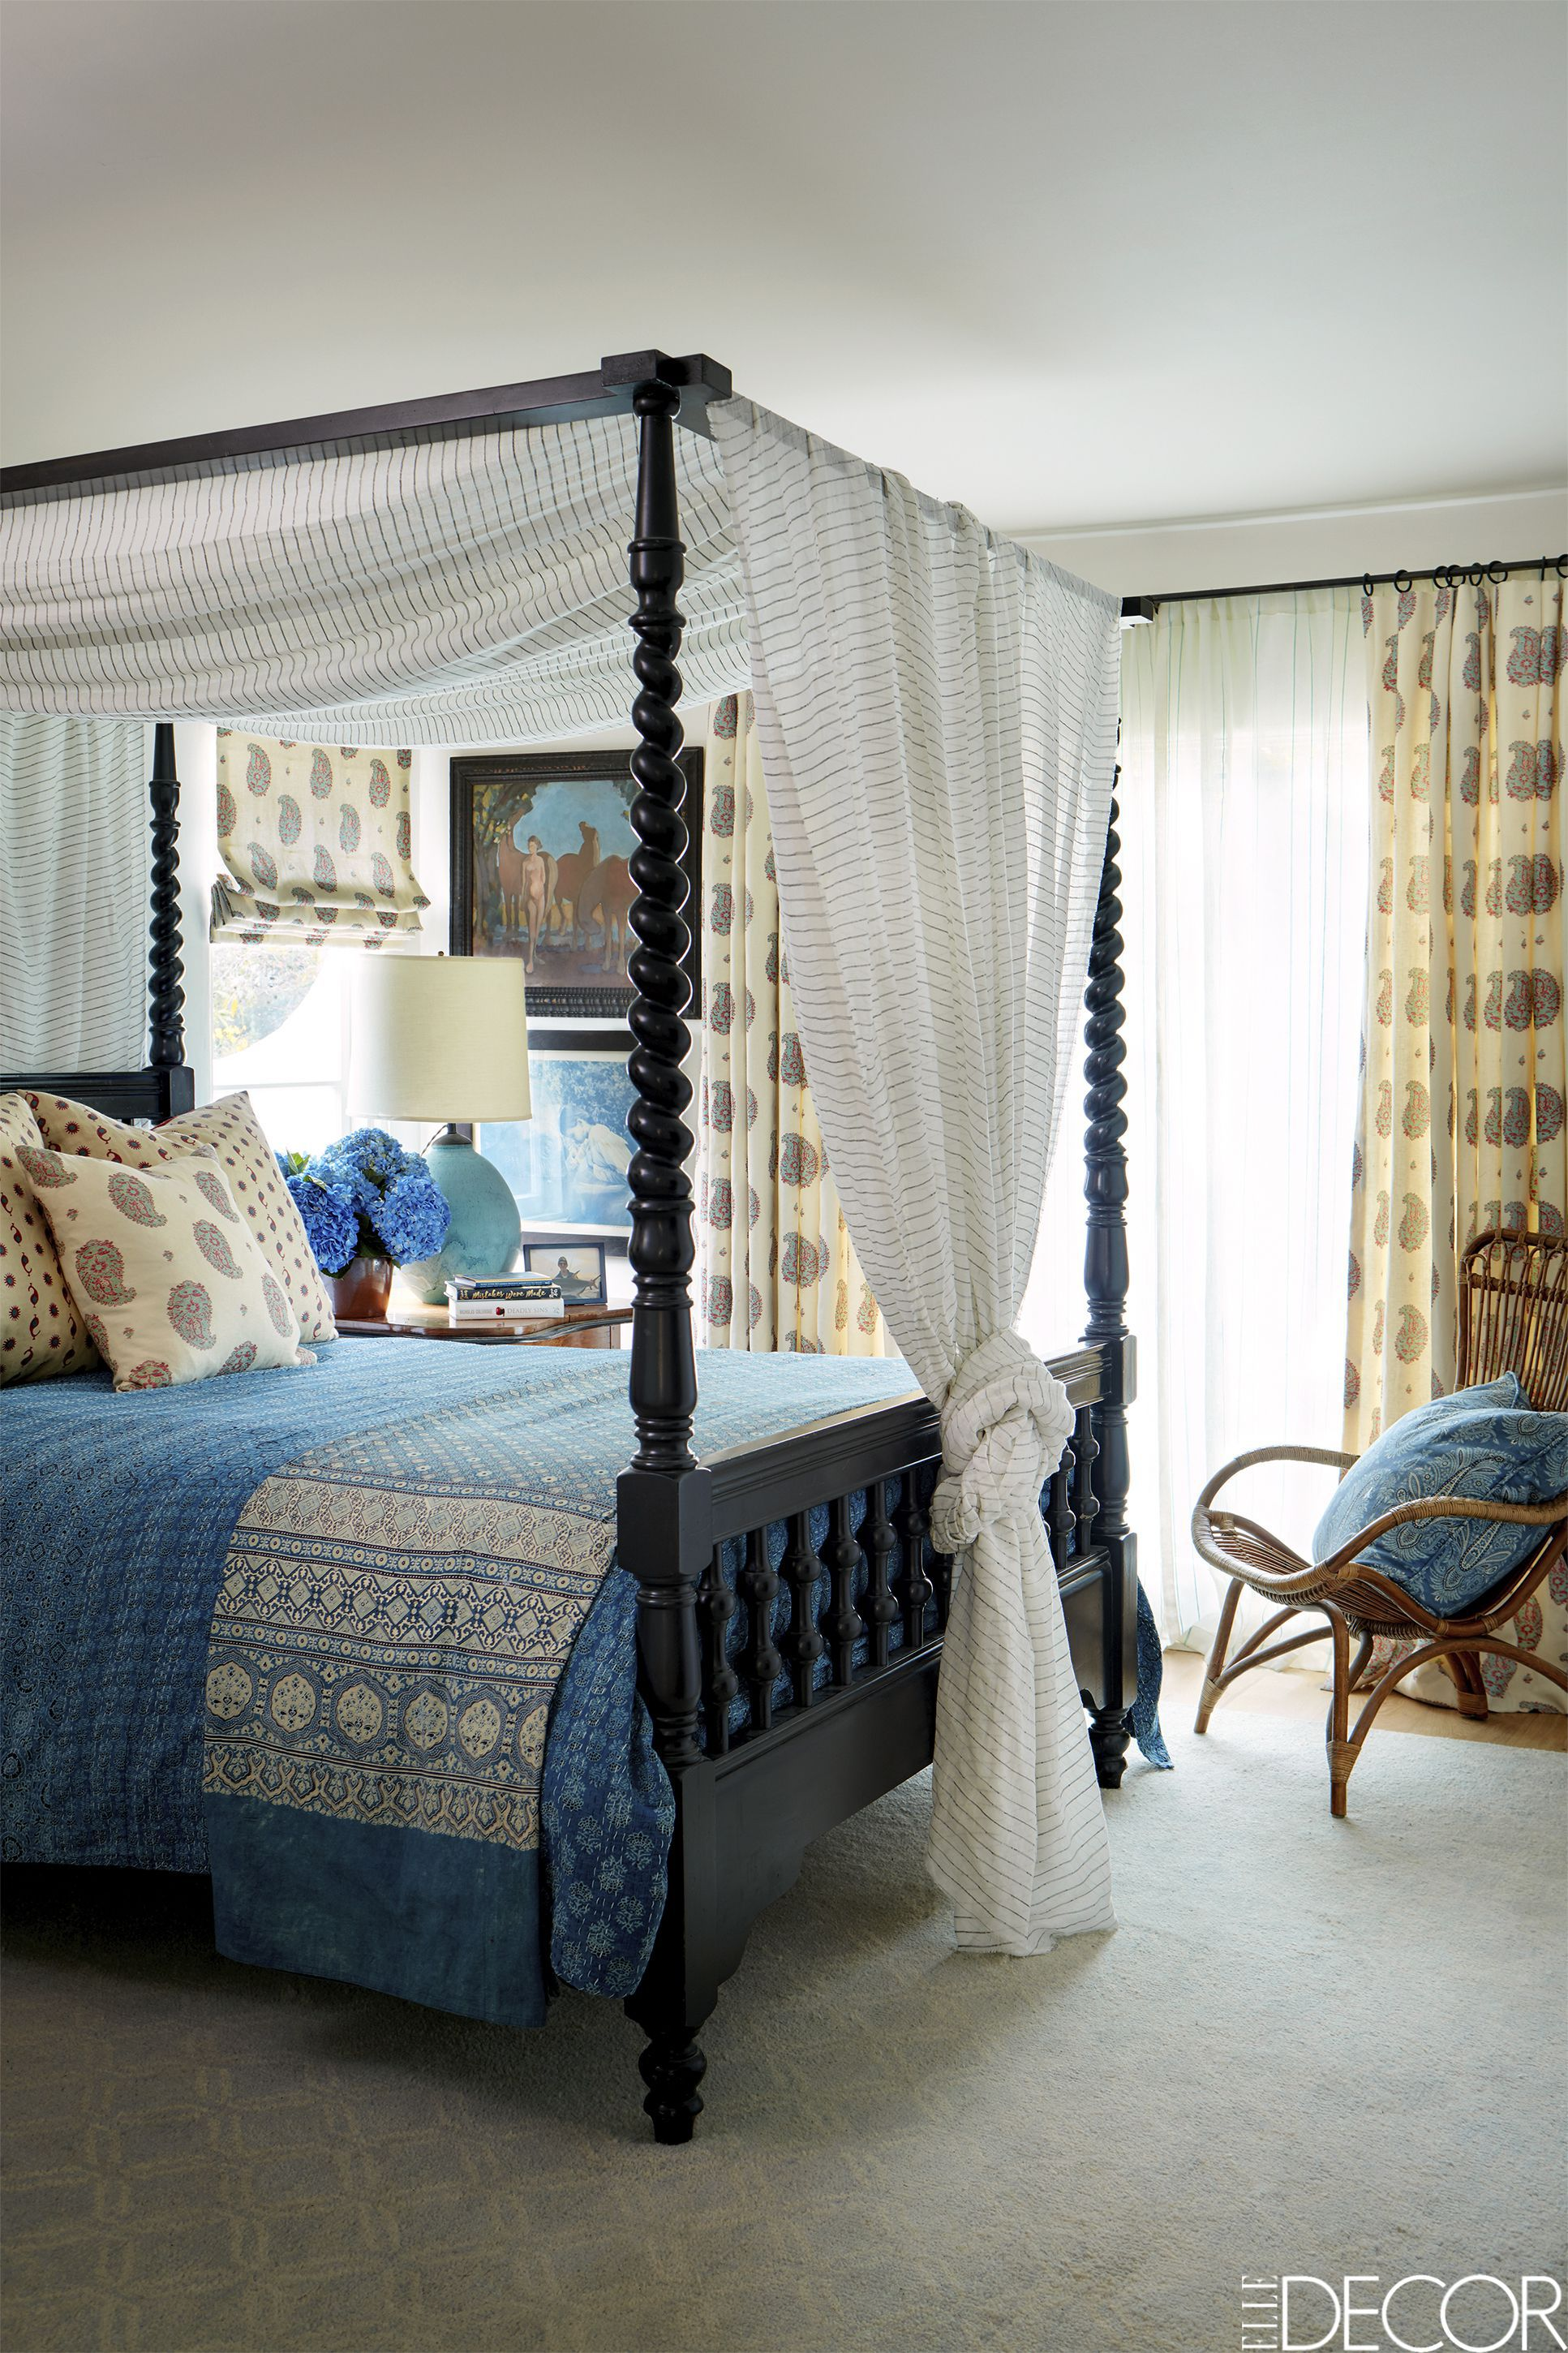 Room decoration with design